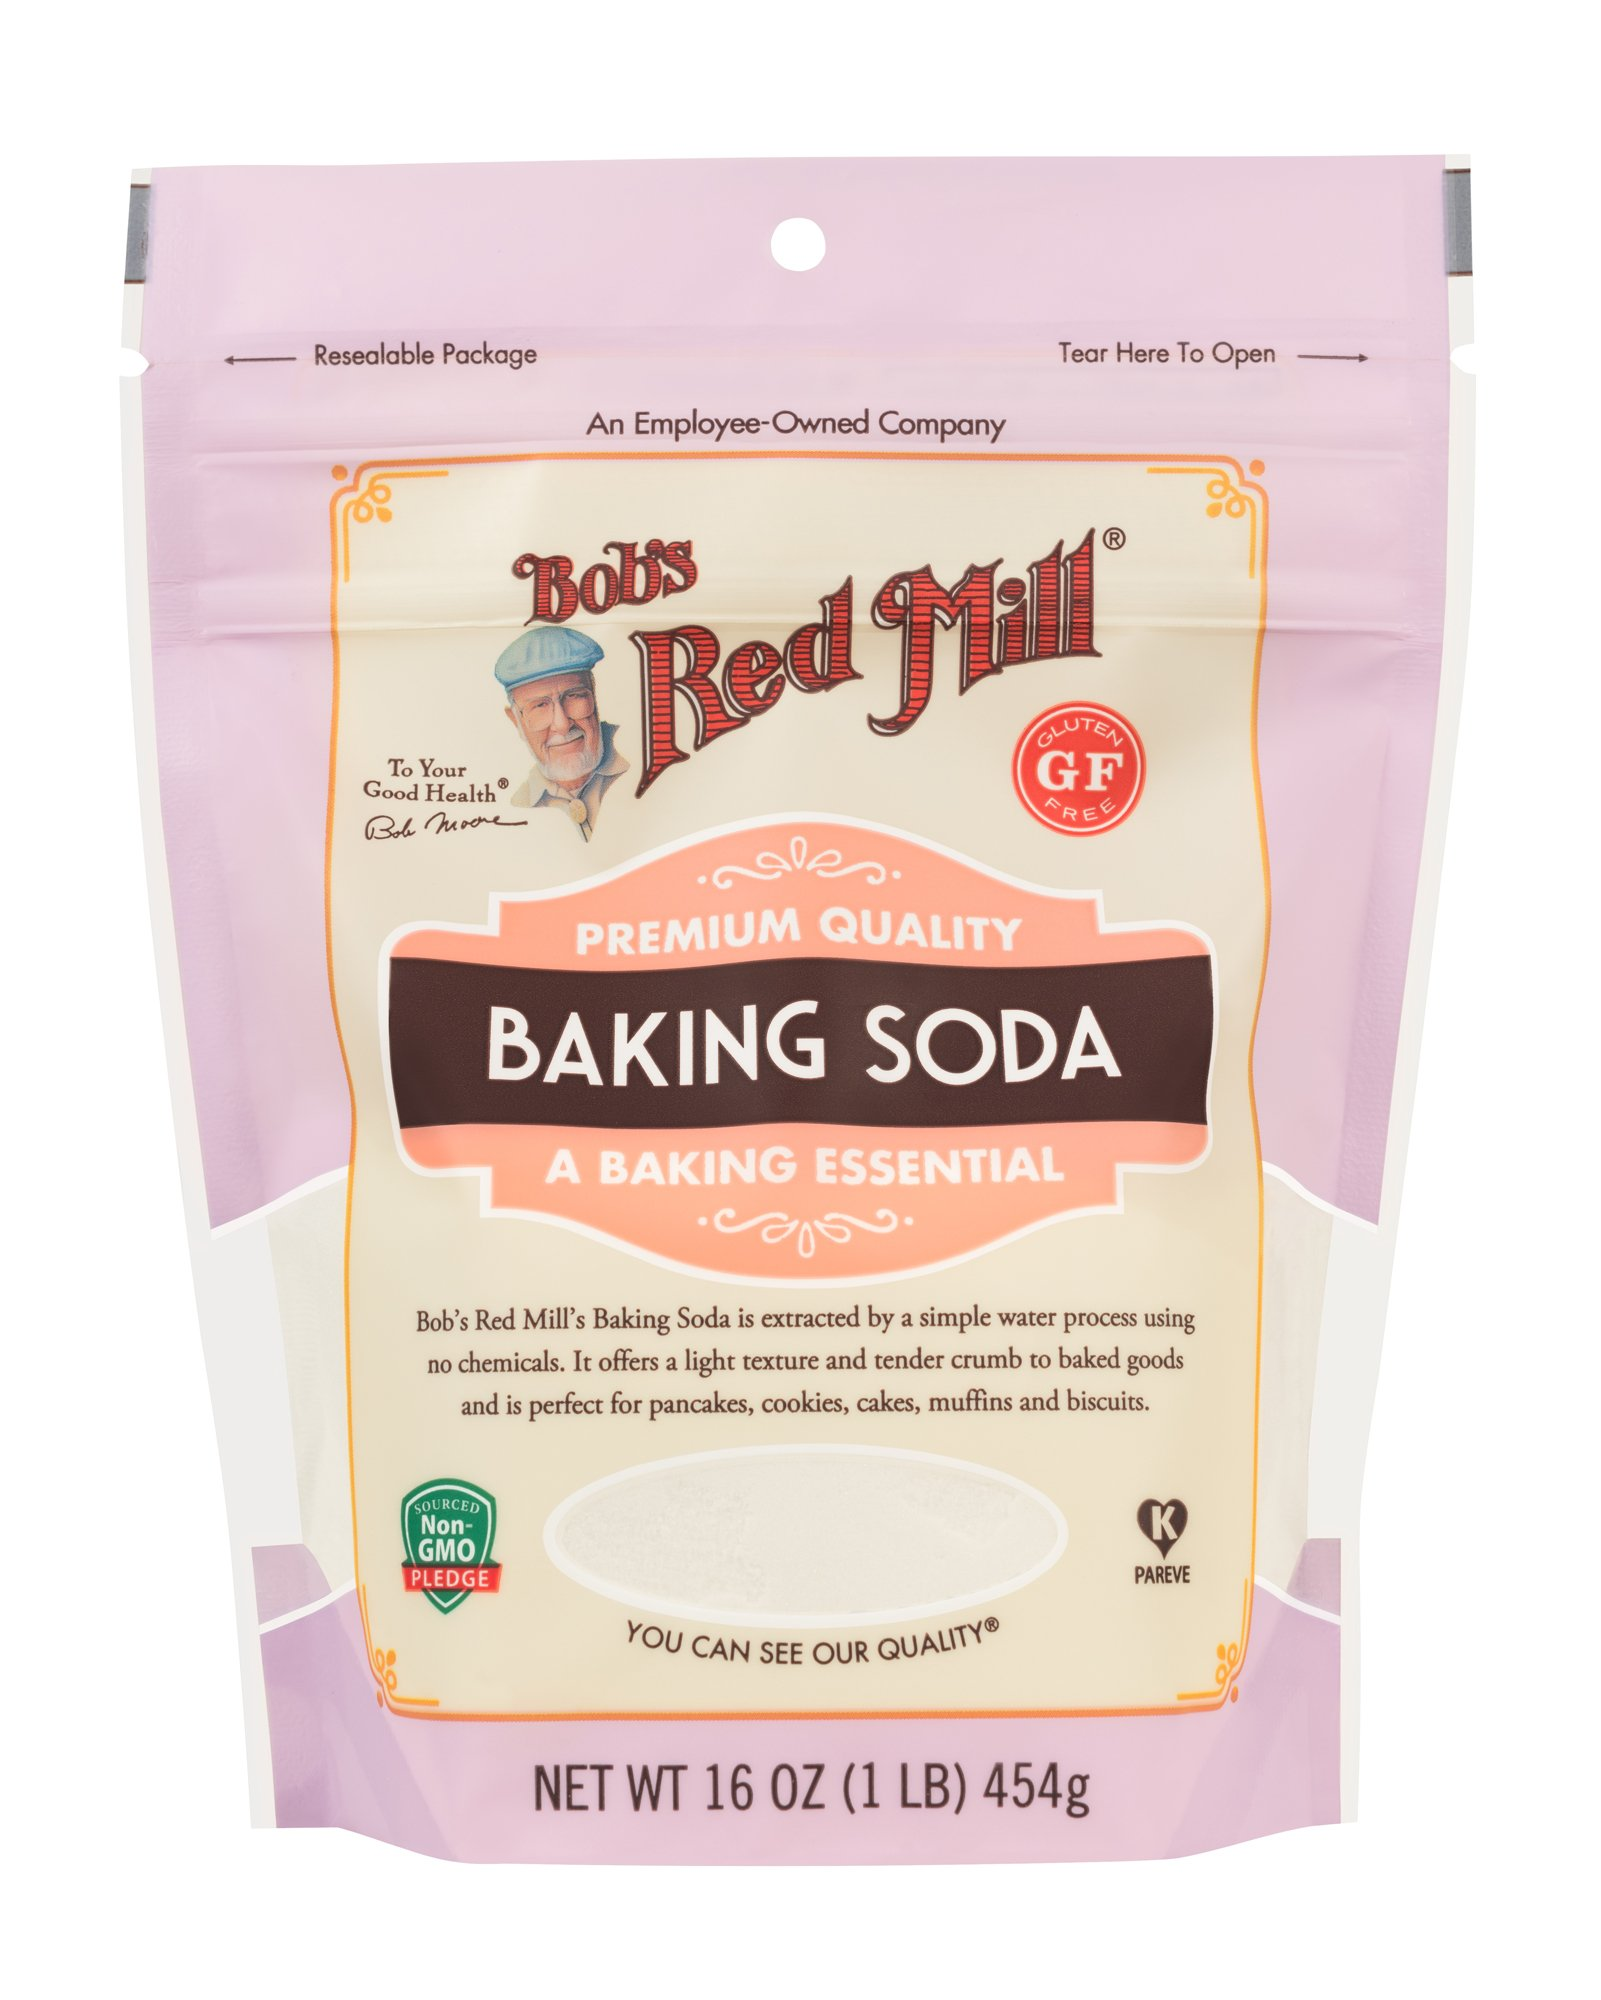 Bob's Red Mill Resealable Baking Soda, 16 Oz (6 Pack) by Bob's Red Mill (Image #3)